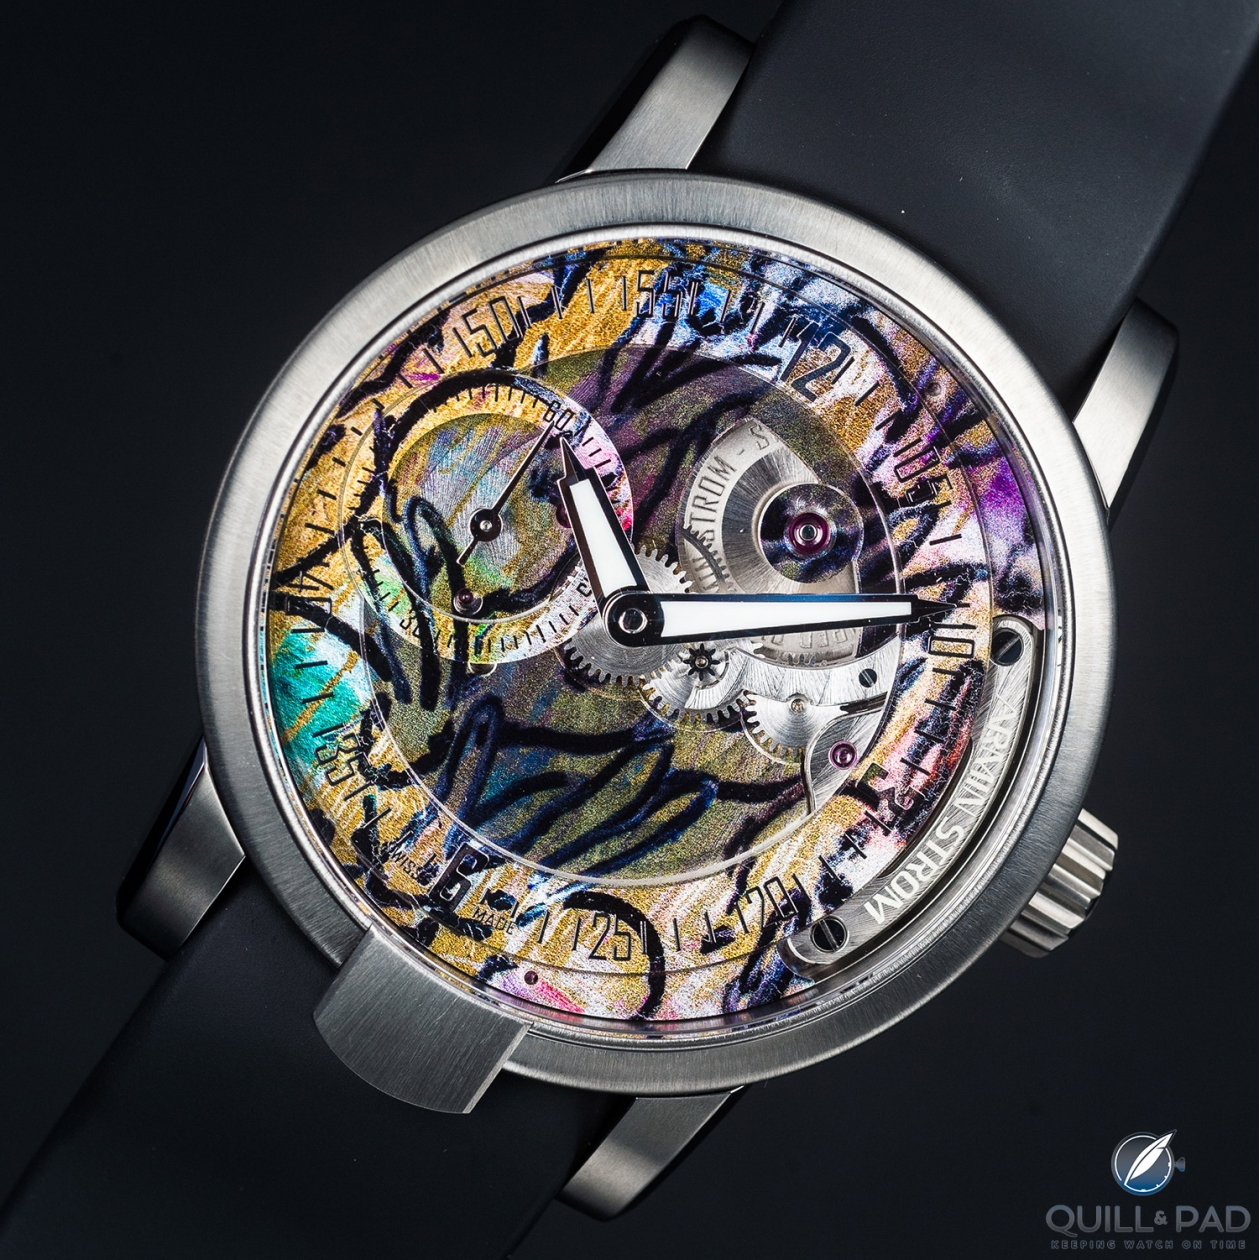 Armin Strom Manual Hunt Slonem Edition For Only Watch 2017: Artfully Neo-Expressionist And Definitely Unique